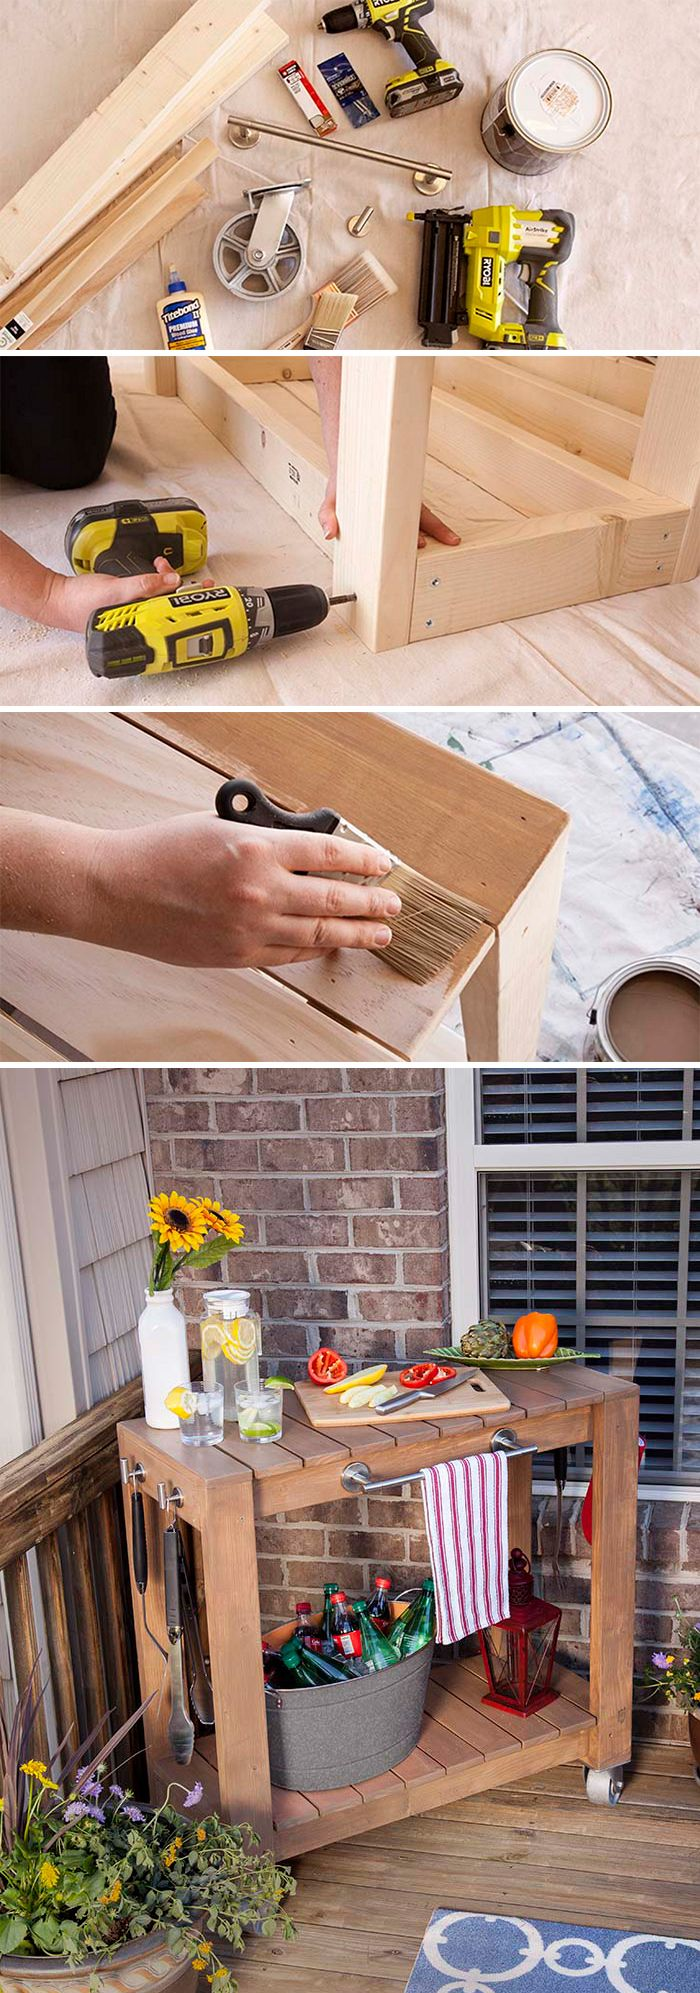 best diy furniture images on pinterest woodworking carpentry